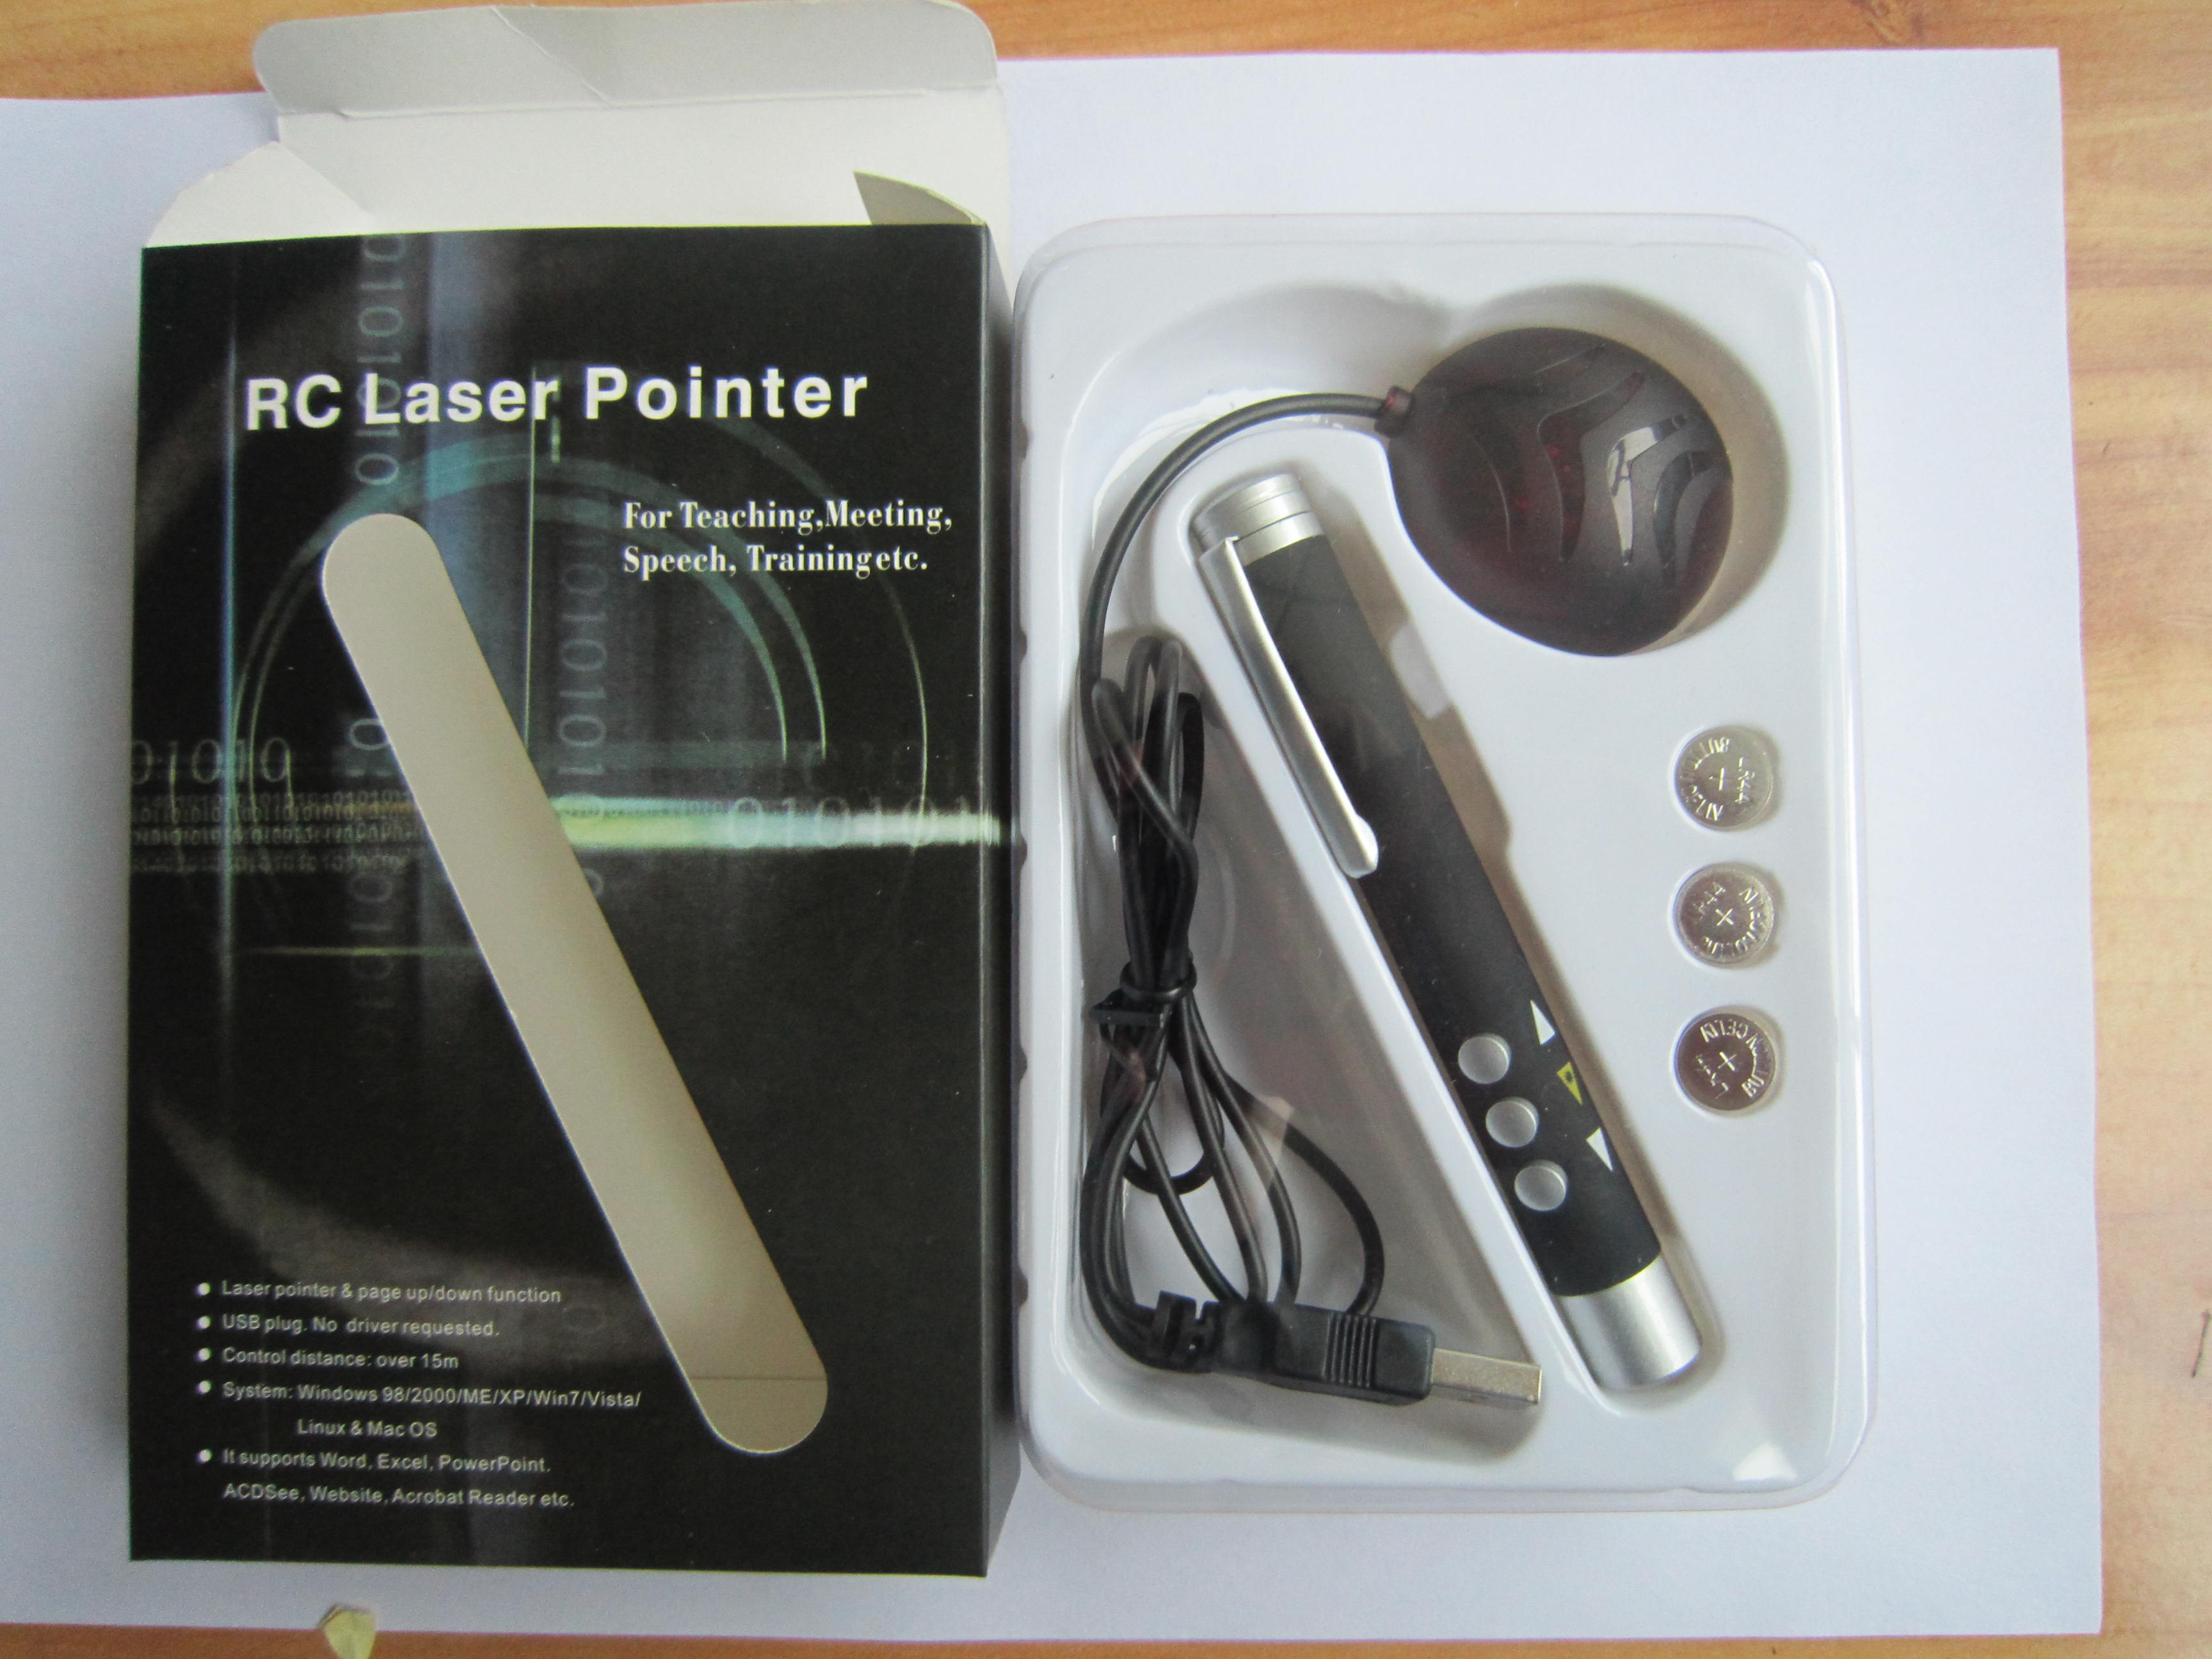 HDW-RS001 Wireless presenter with laser pointer